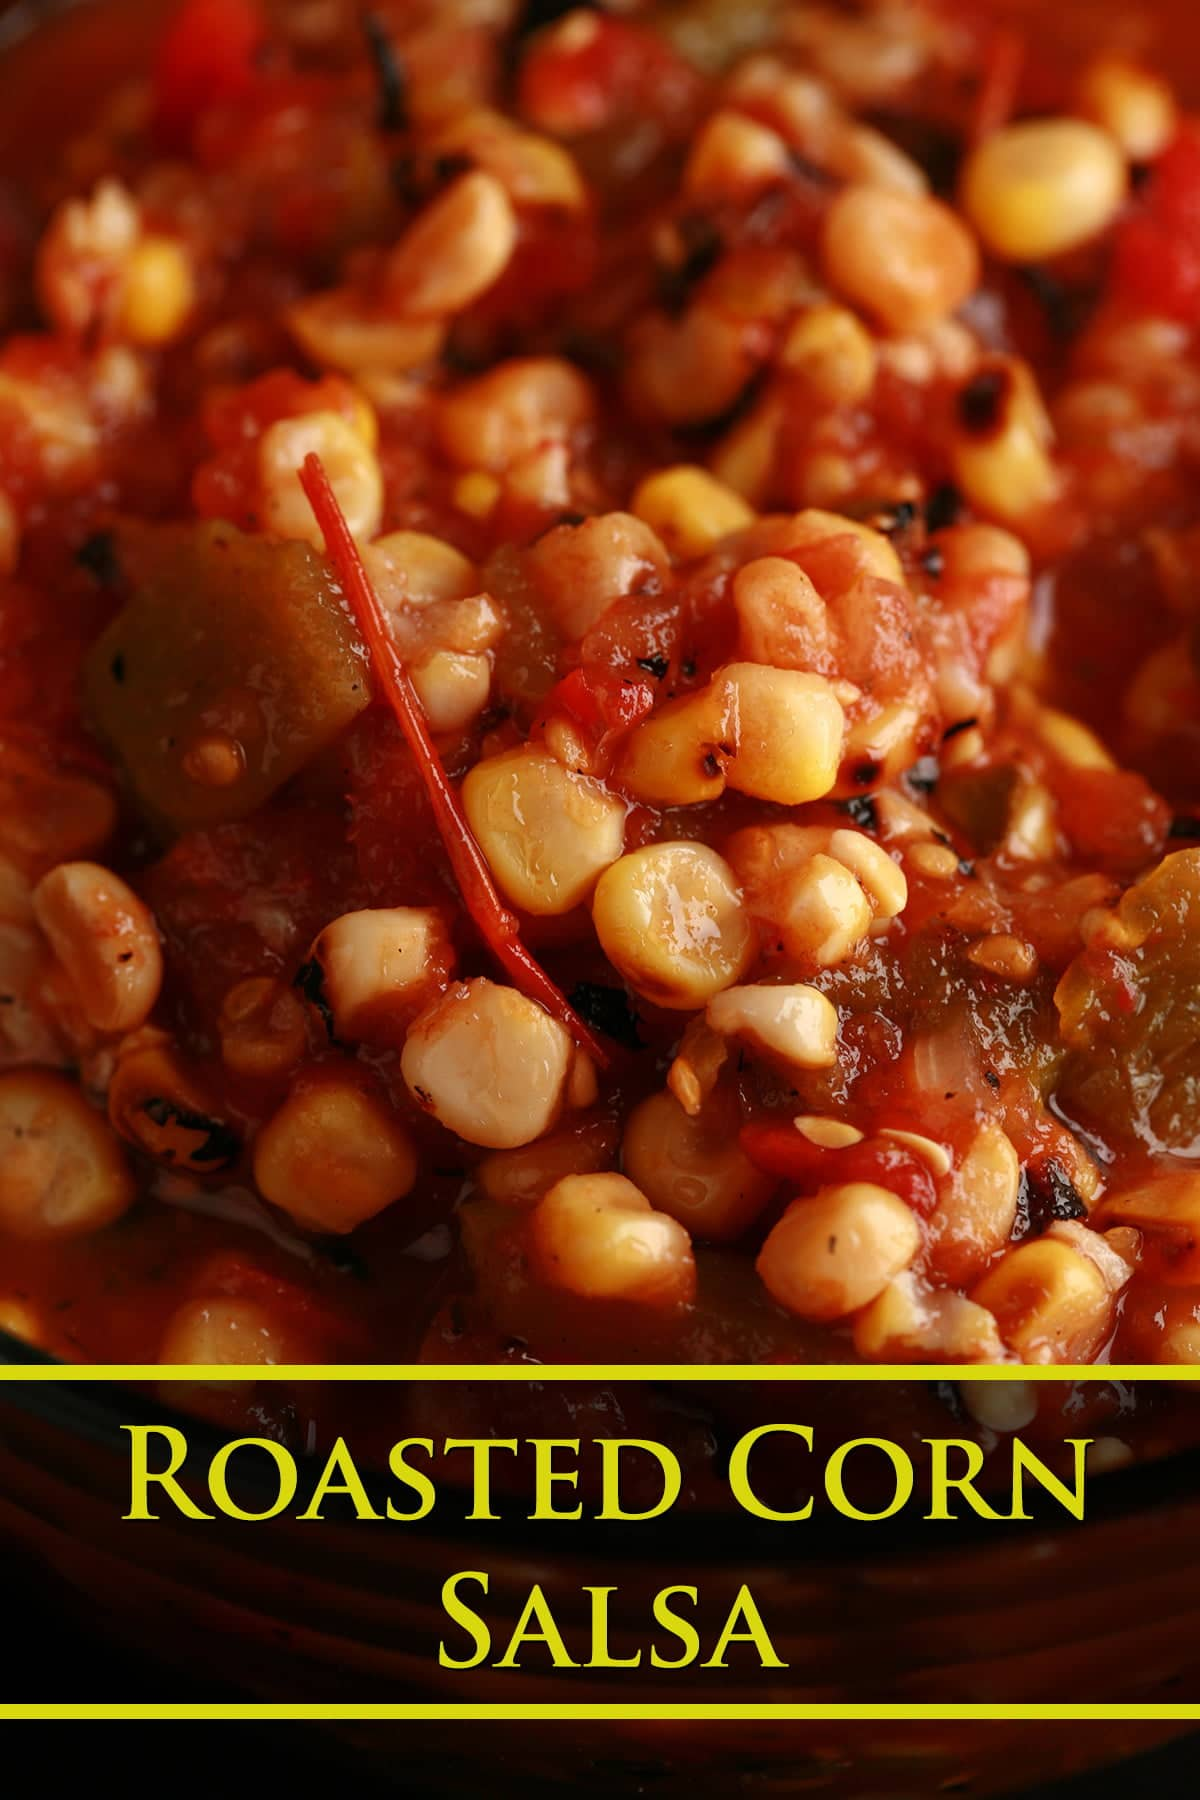 A close up view of roasted corn salsa for canning - corn salsa with tomatoes and peppers.